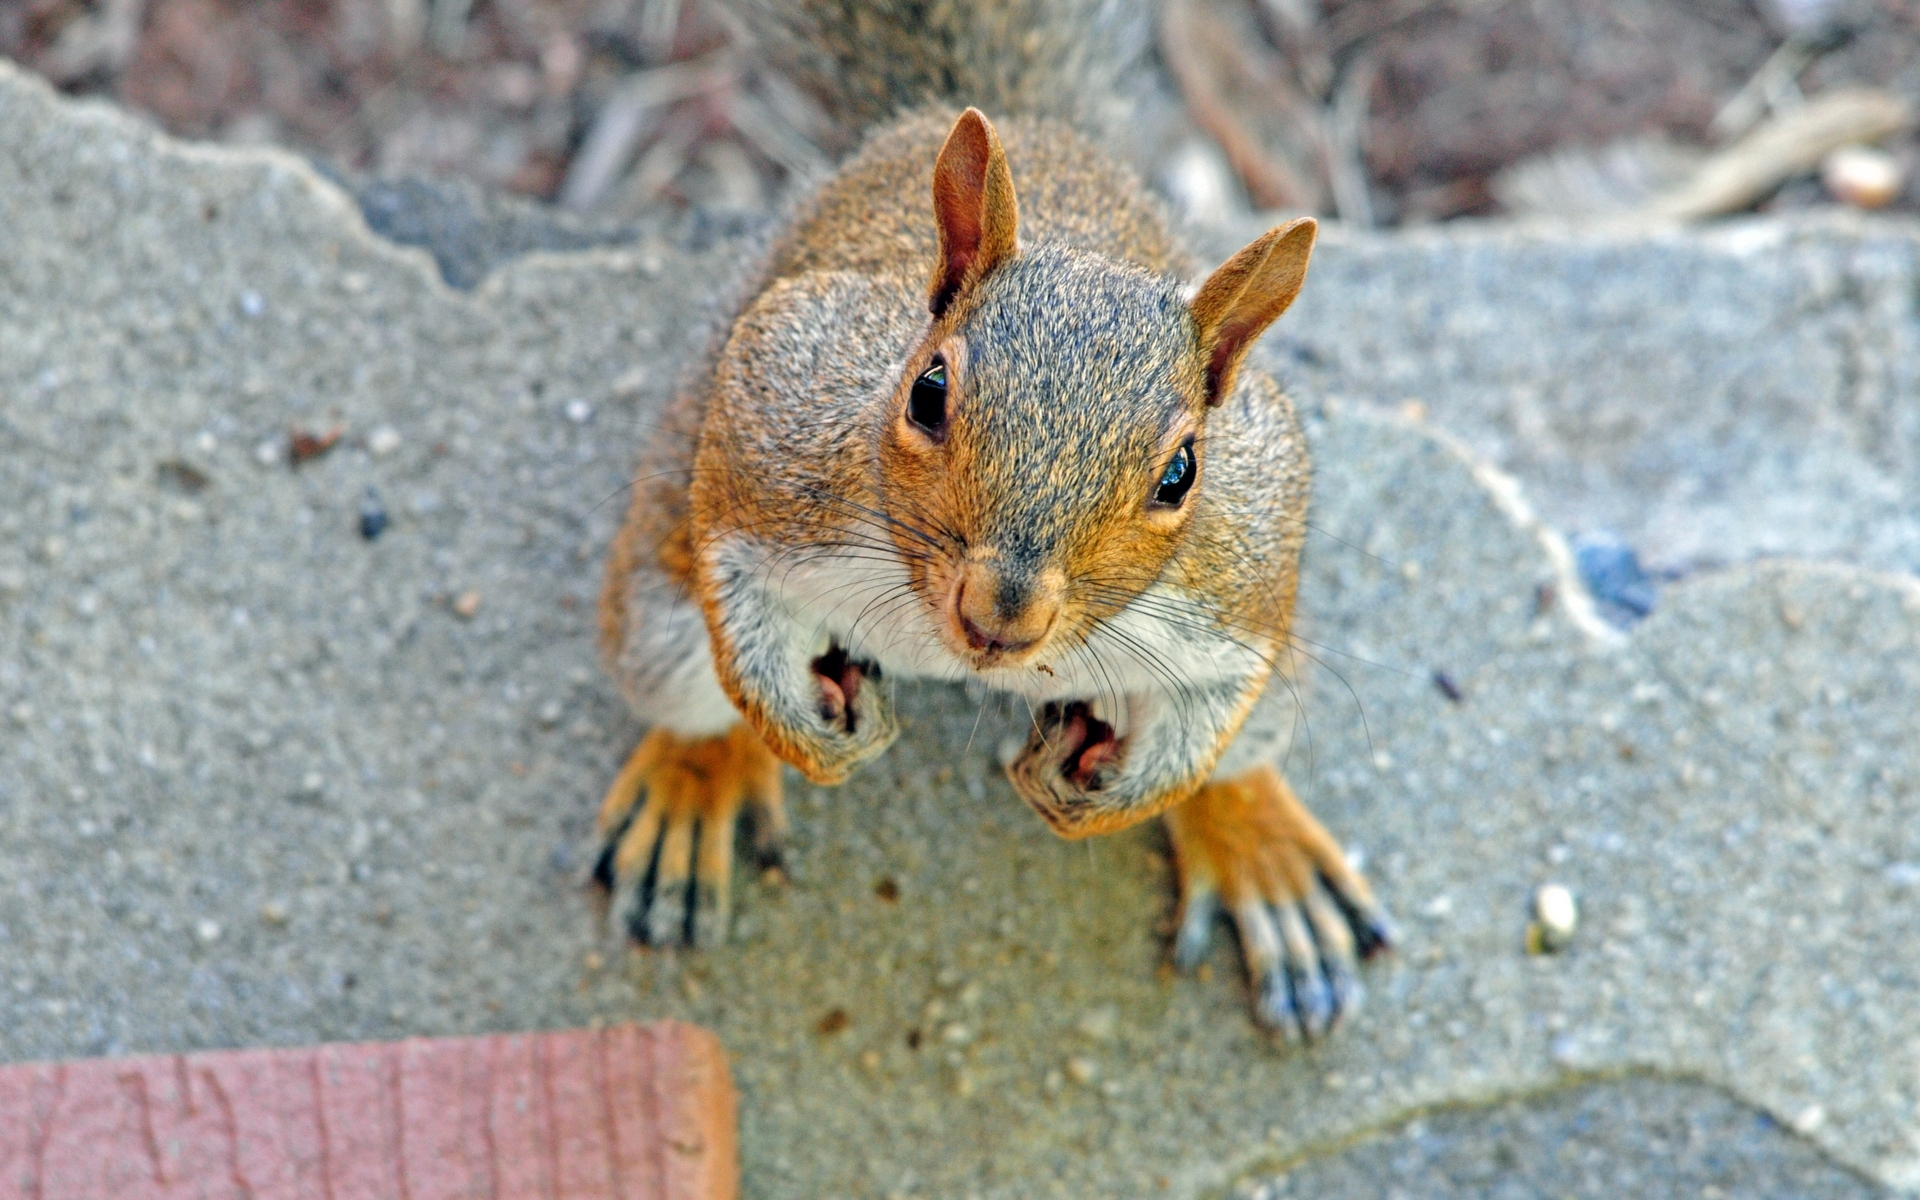 49401 download wallpaper Animals, Squirrel screensavers and pictures for free